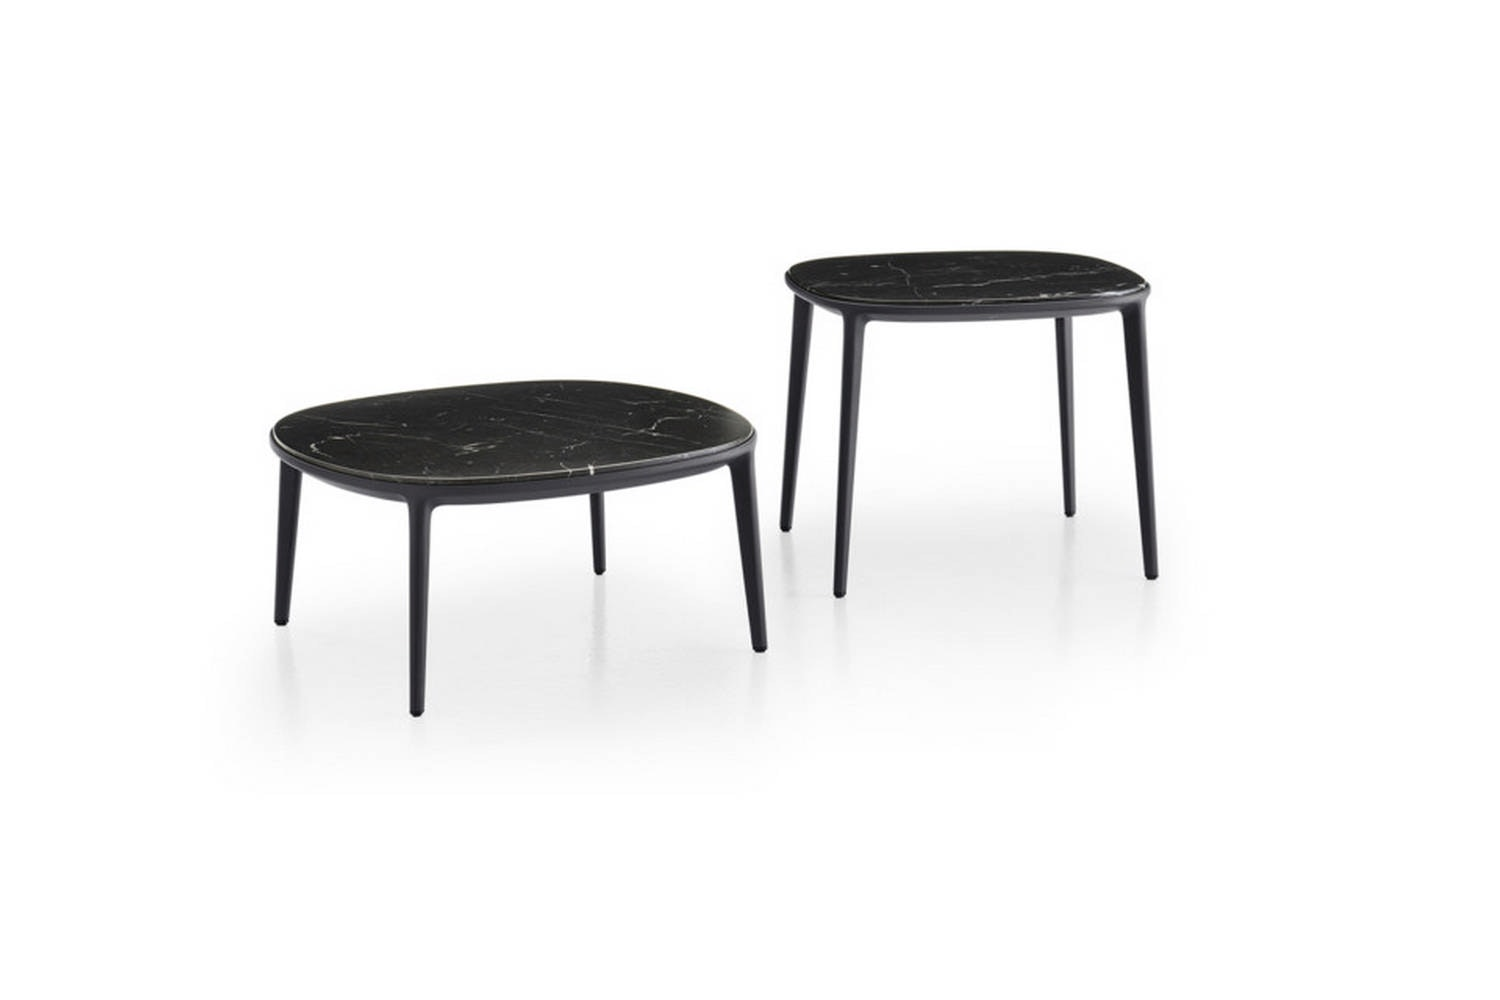 Caratos Coffee Table by Antonio Citterio for Maxalto